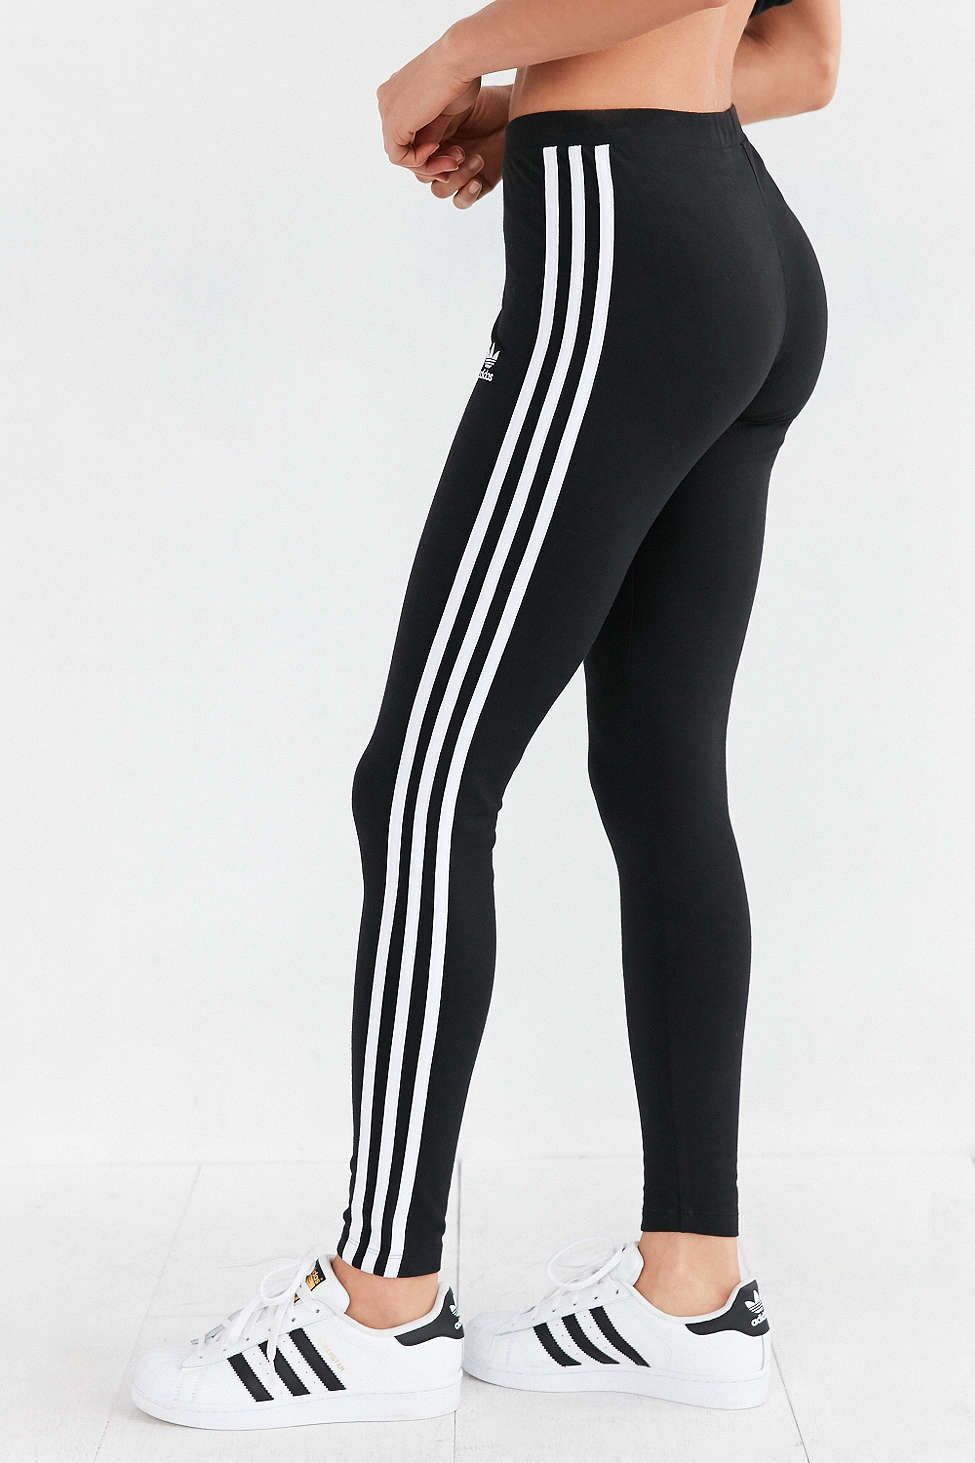 643c9bd494d0a8 adidas on in 2019 | Free runs | Striped leggings, Adidas shoes women ...